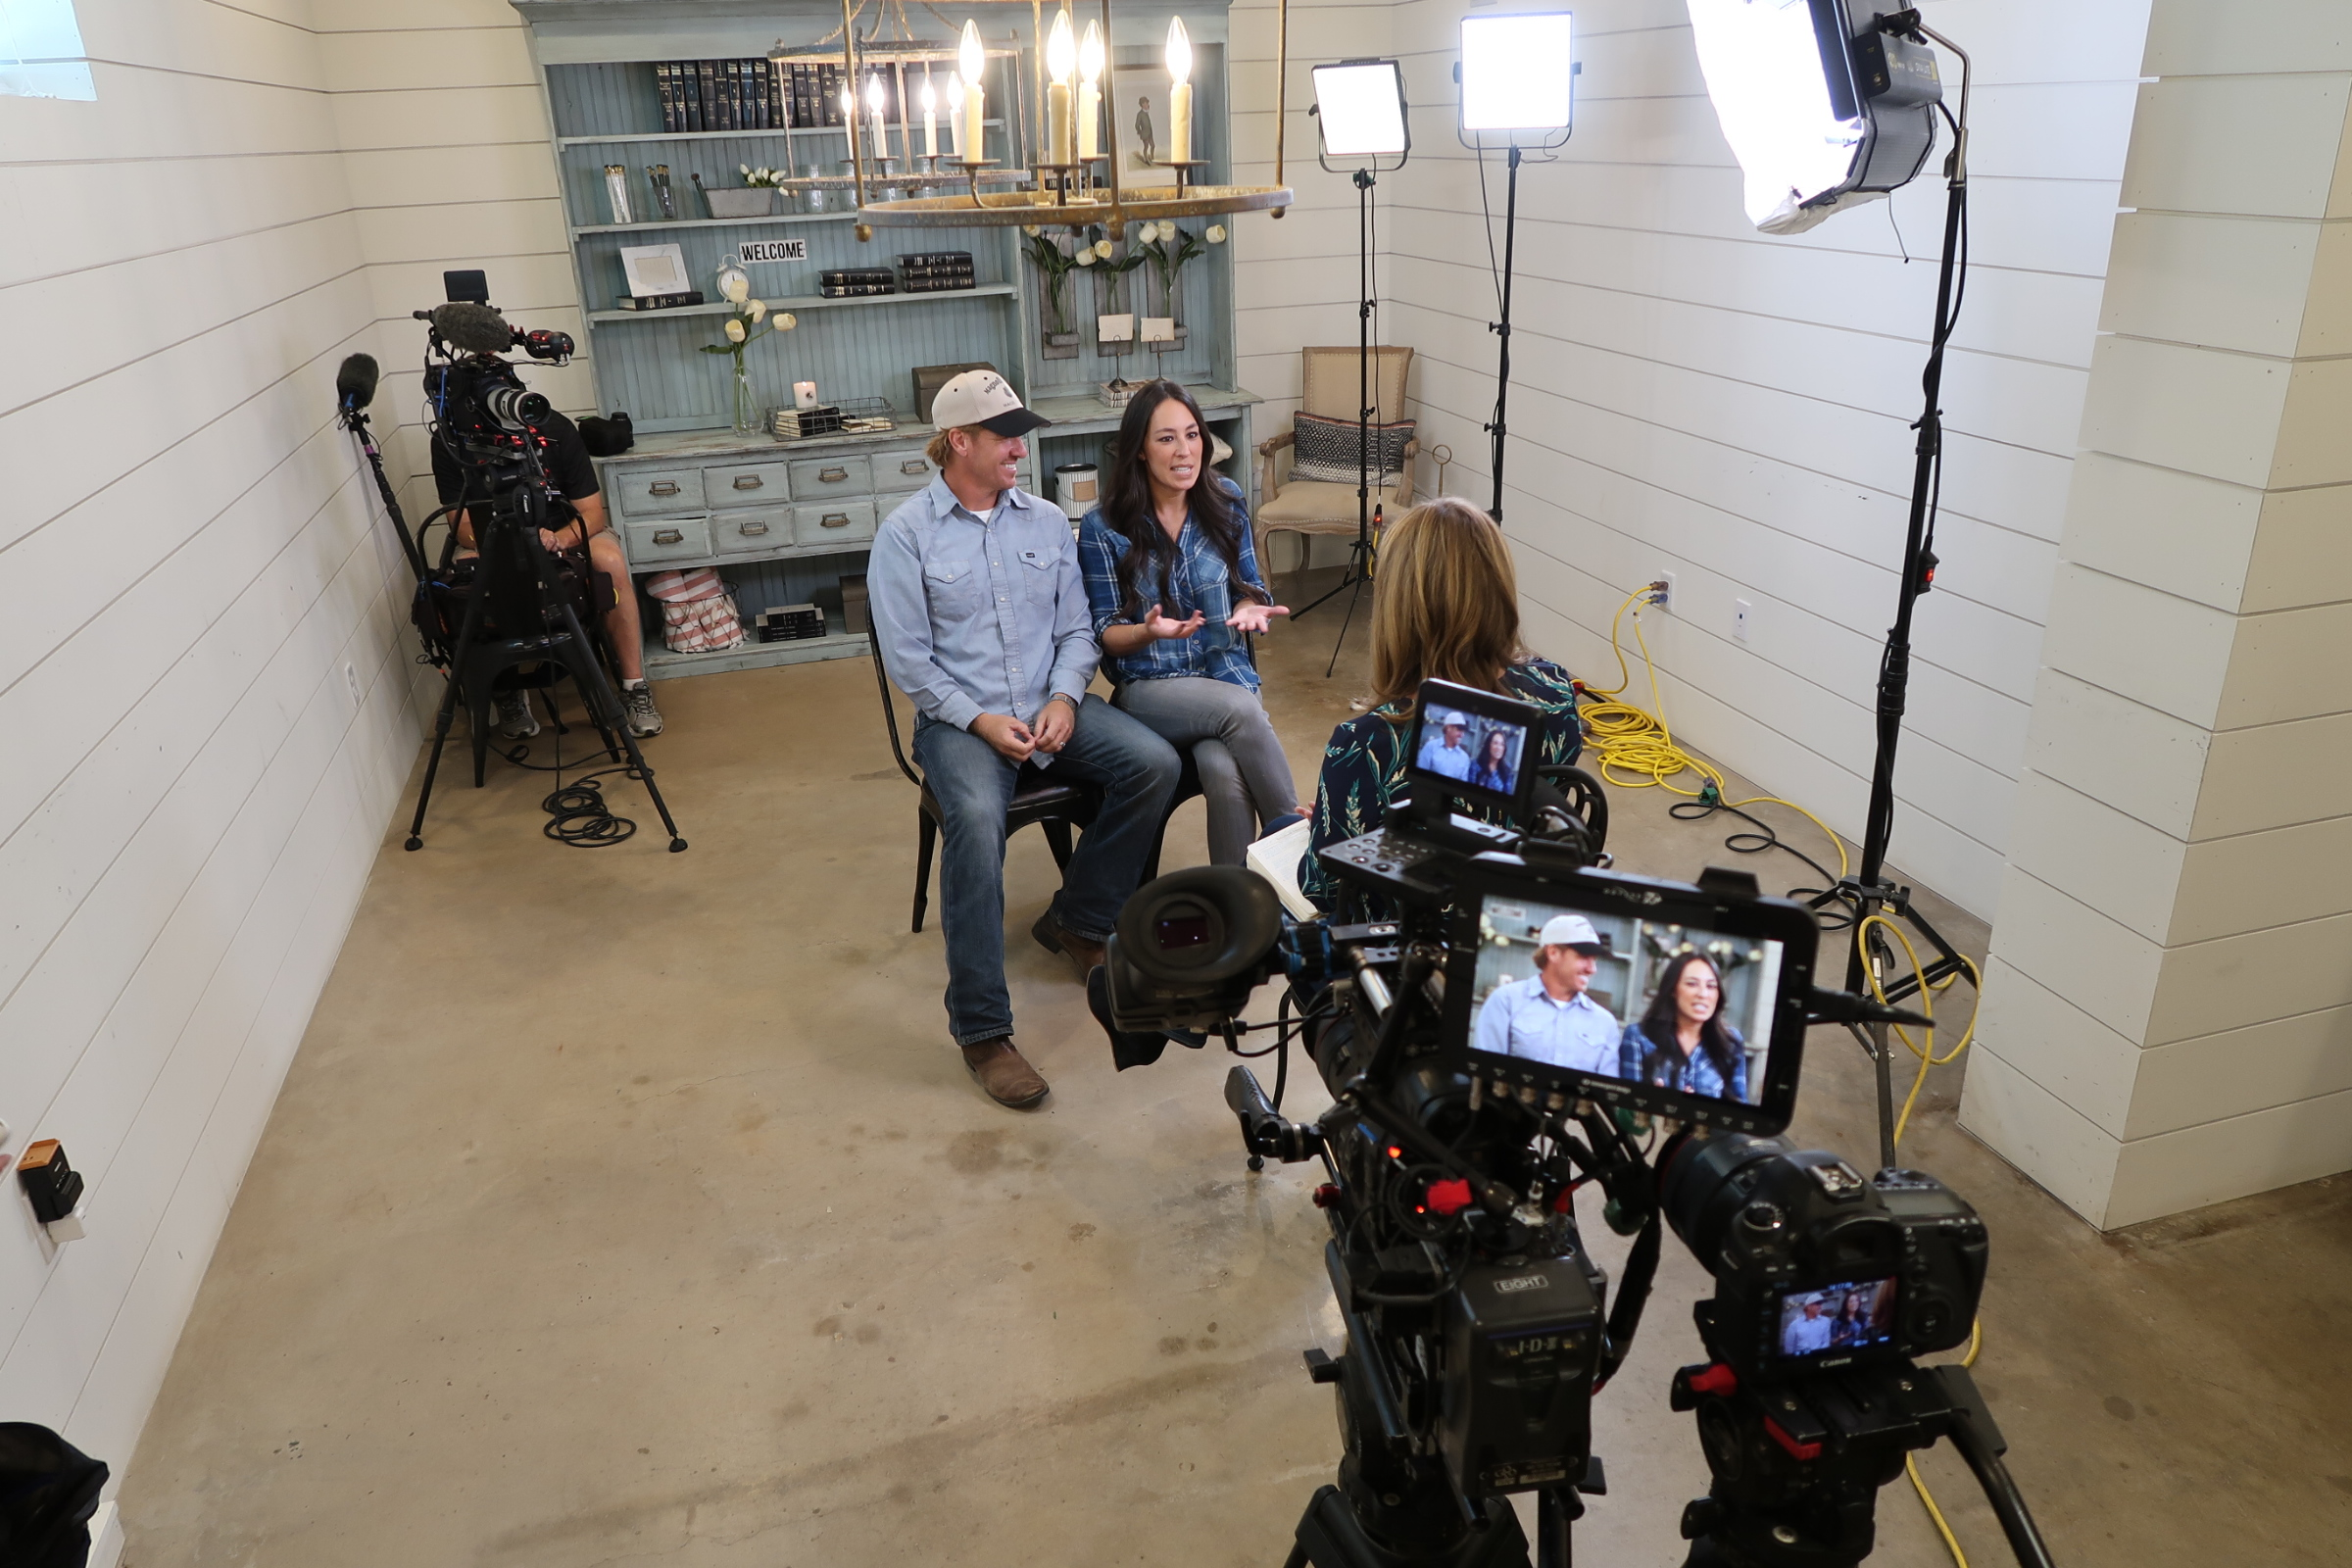 image15 Texas Cameraman Reunites with Chip and Joanna Gaines for The Today Show